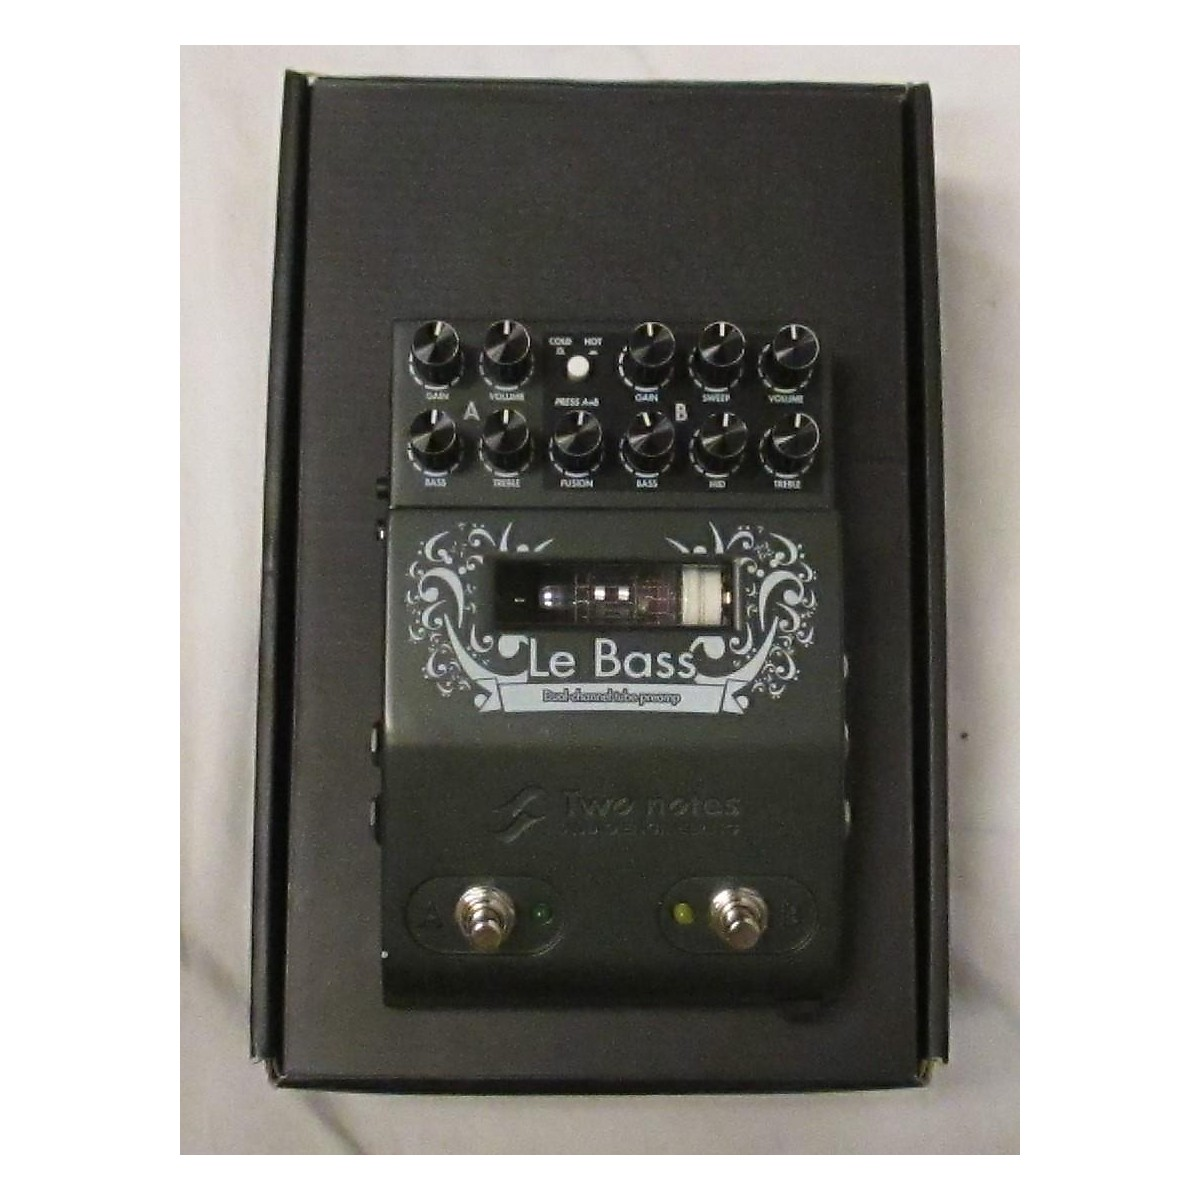 Two Notes Audio Engineering Le Bass Tube Bass Preamp